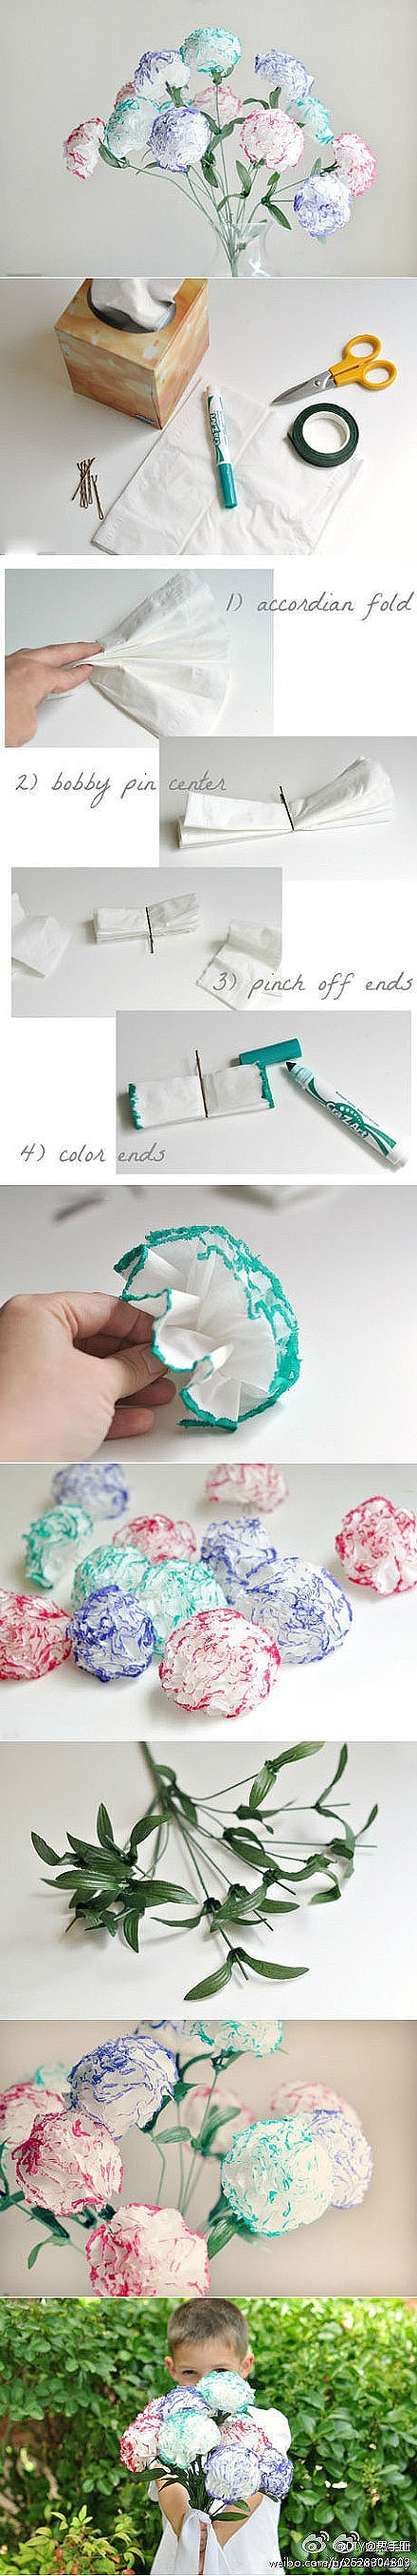 Paper Carnations...Kristy!!! Haha totally made me think of Aunt Kathy!!!!